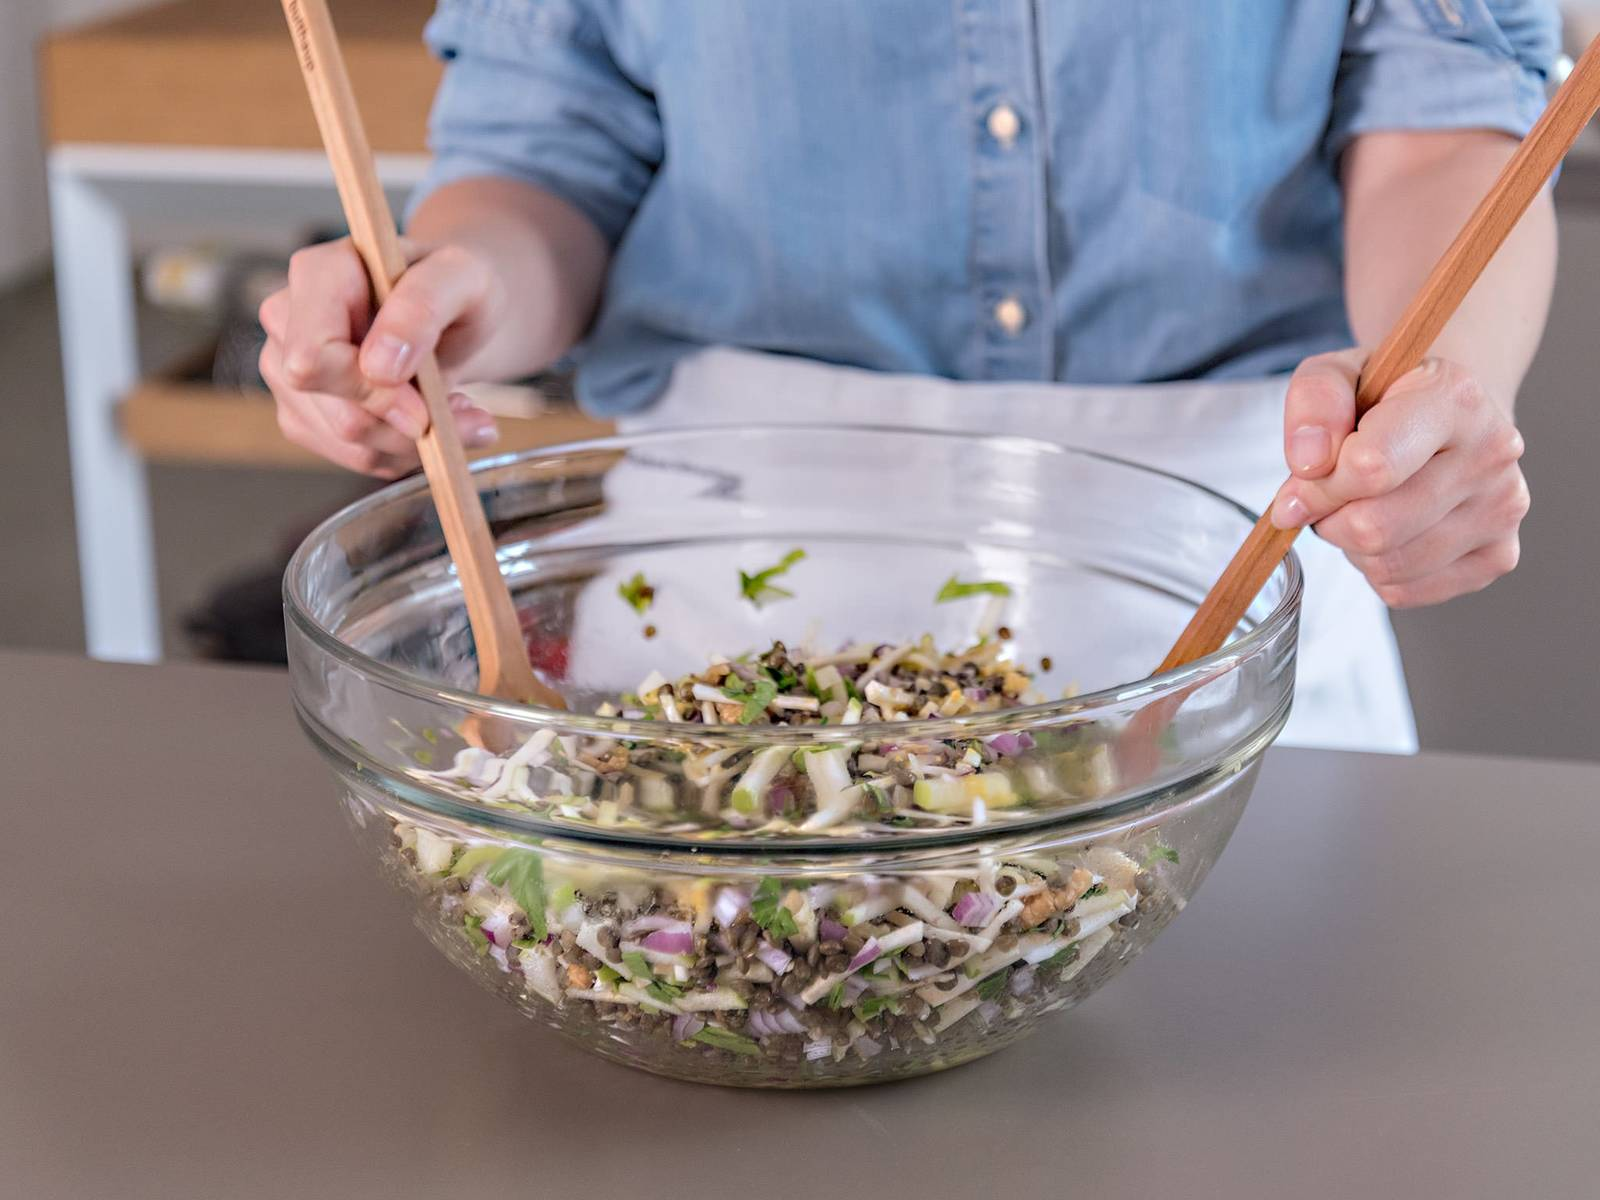 In a large mixing bowl, toss together all ingredients until thoroughly mixed and coated with dressing. Season with salt and pepper. Enjoy!